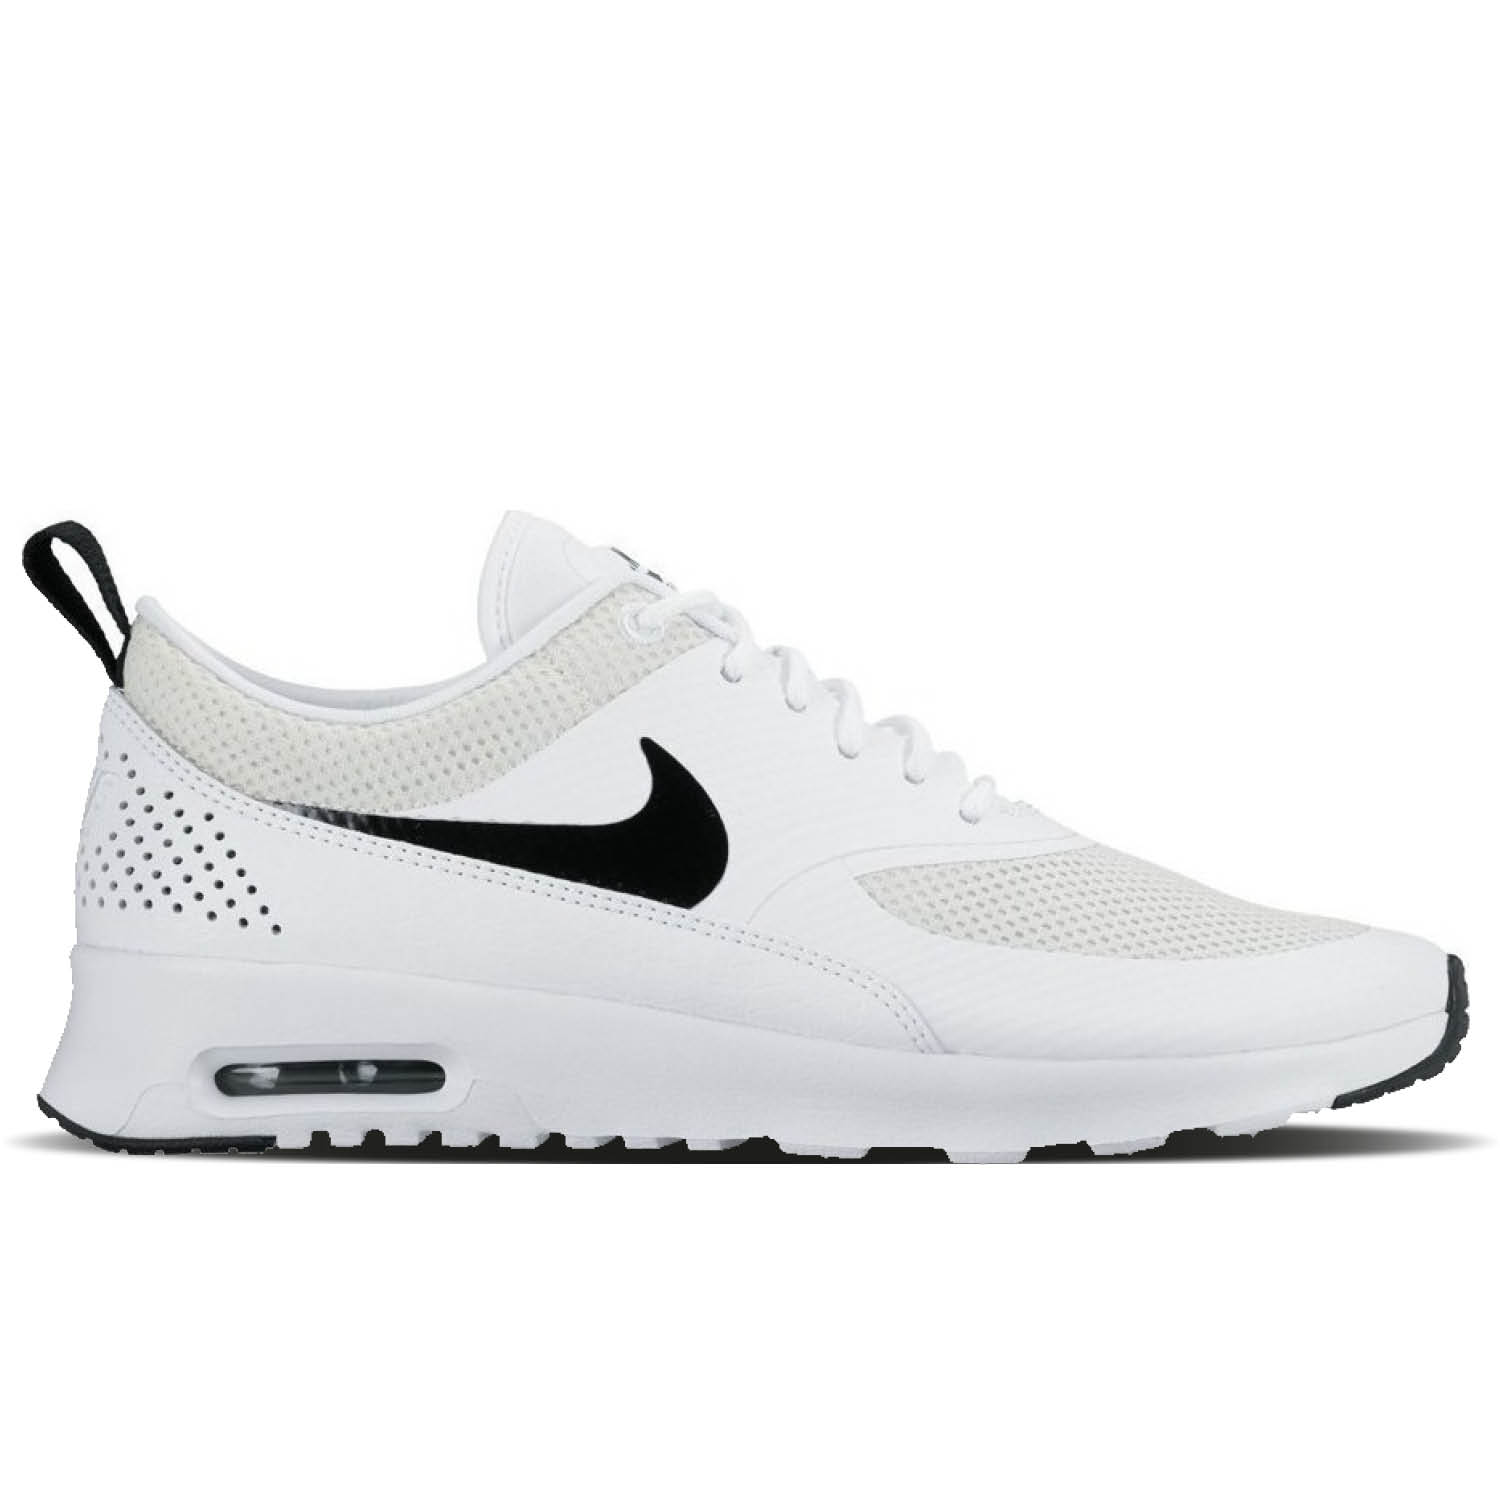 Nike Air Max Thea White/Black 599409 103